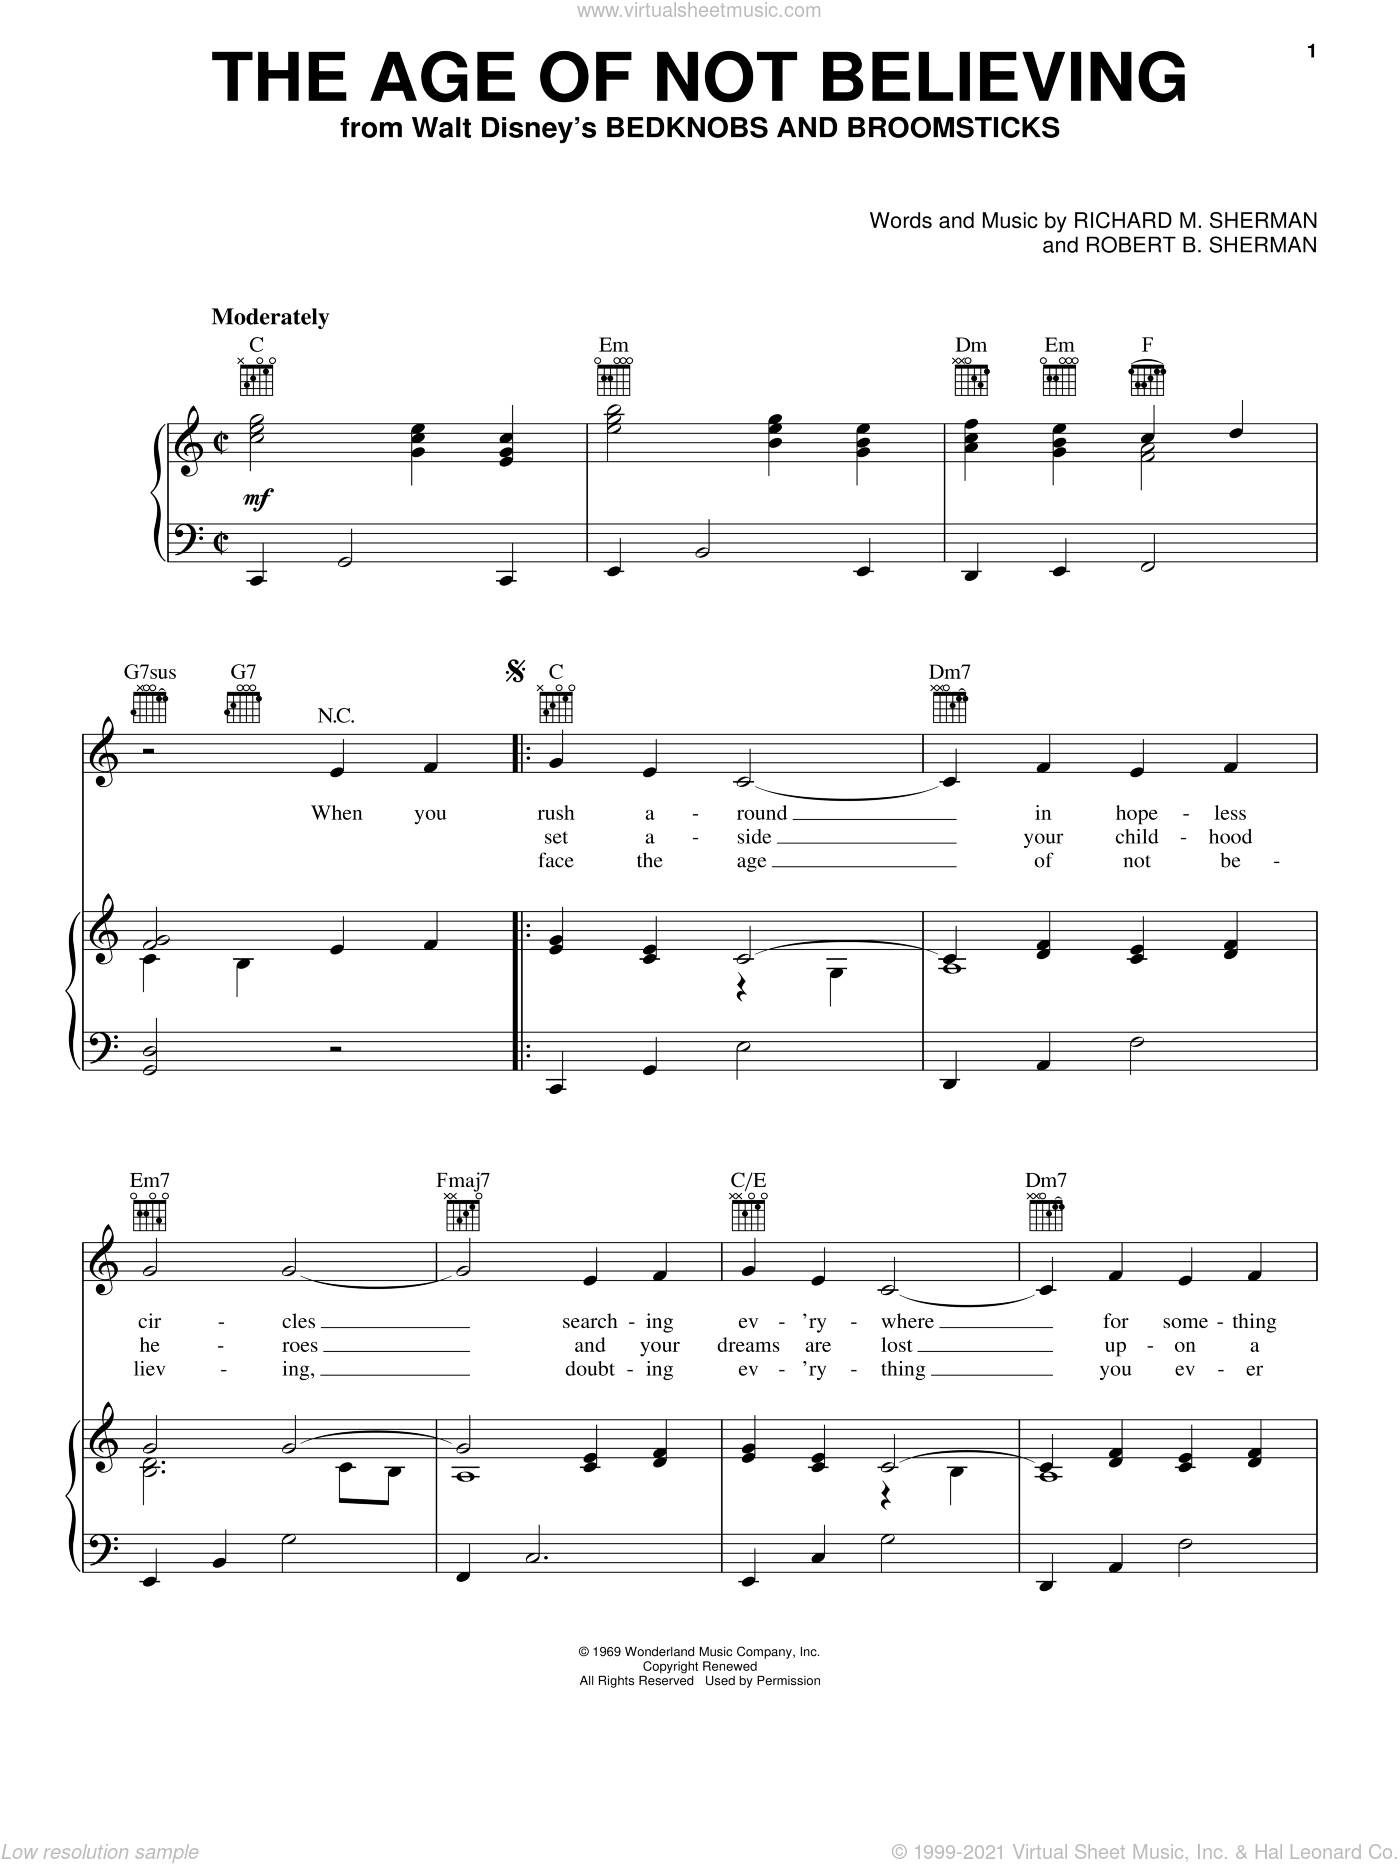 The Age Of Not Believing sheet music for voice, piano or guitar by Robert B. Sherman, Sherman Brothers and Richard M. Sherman. Score Image Preview.